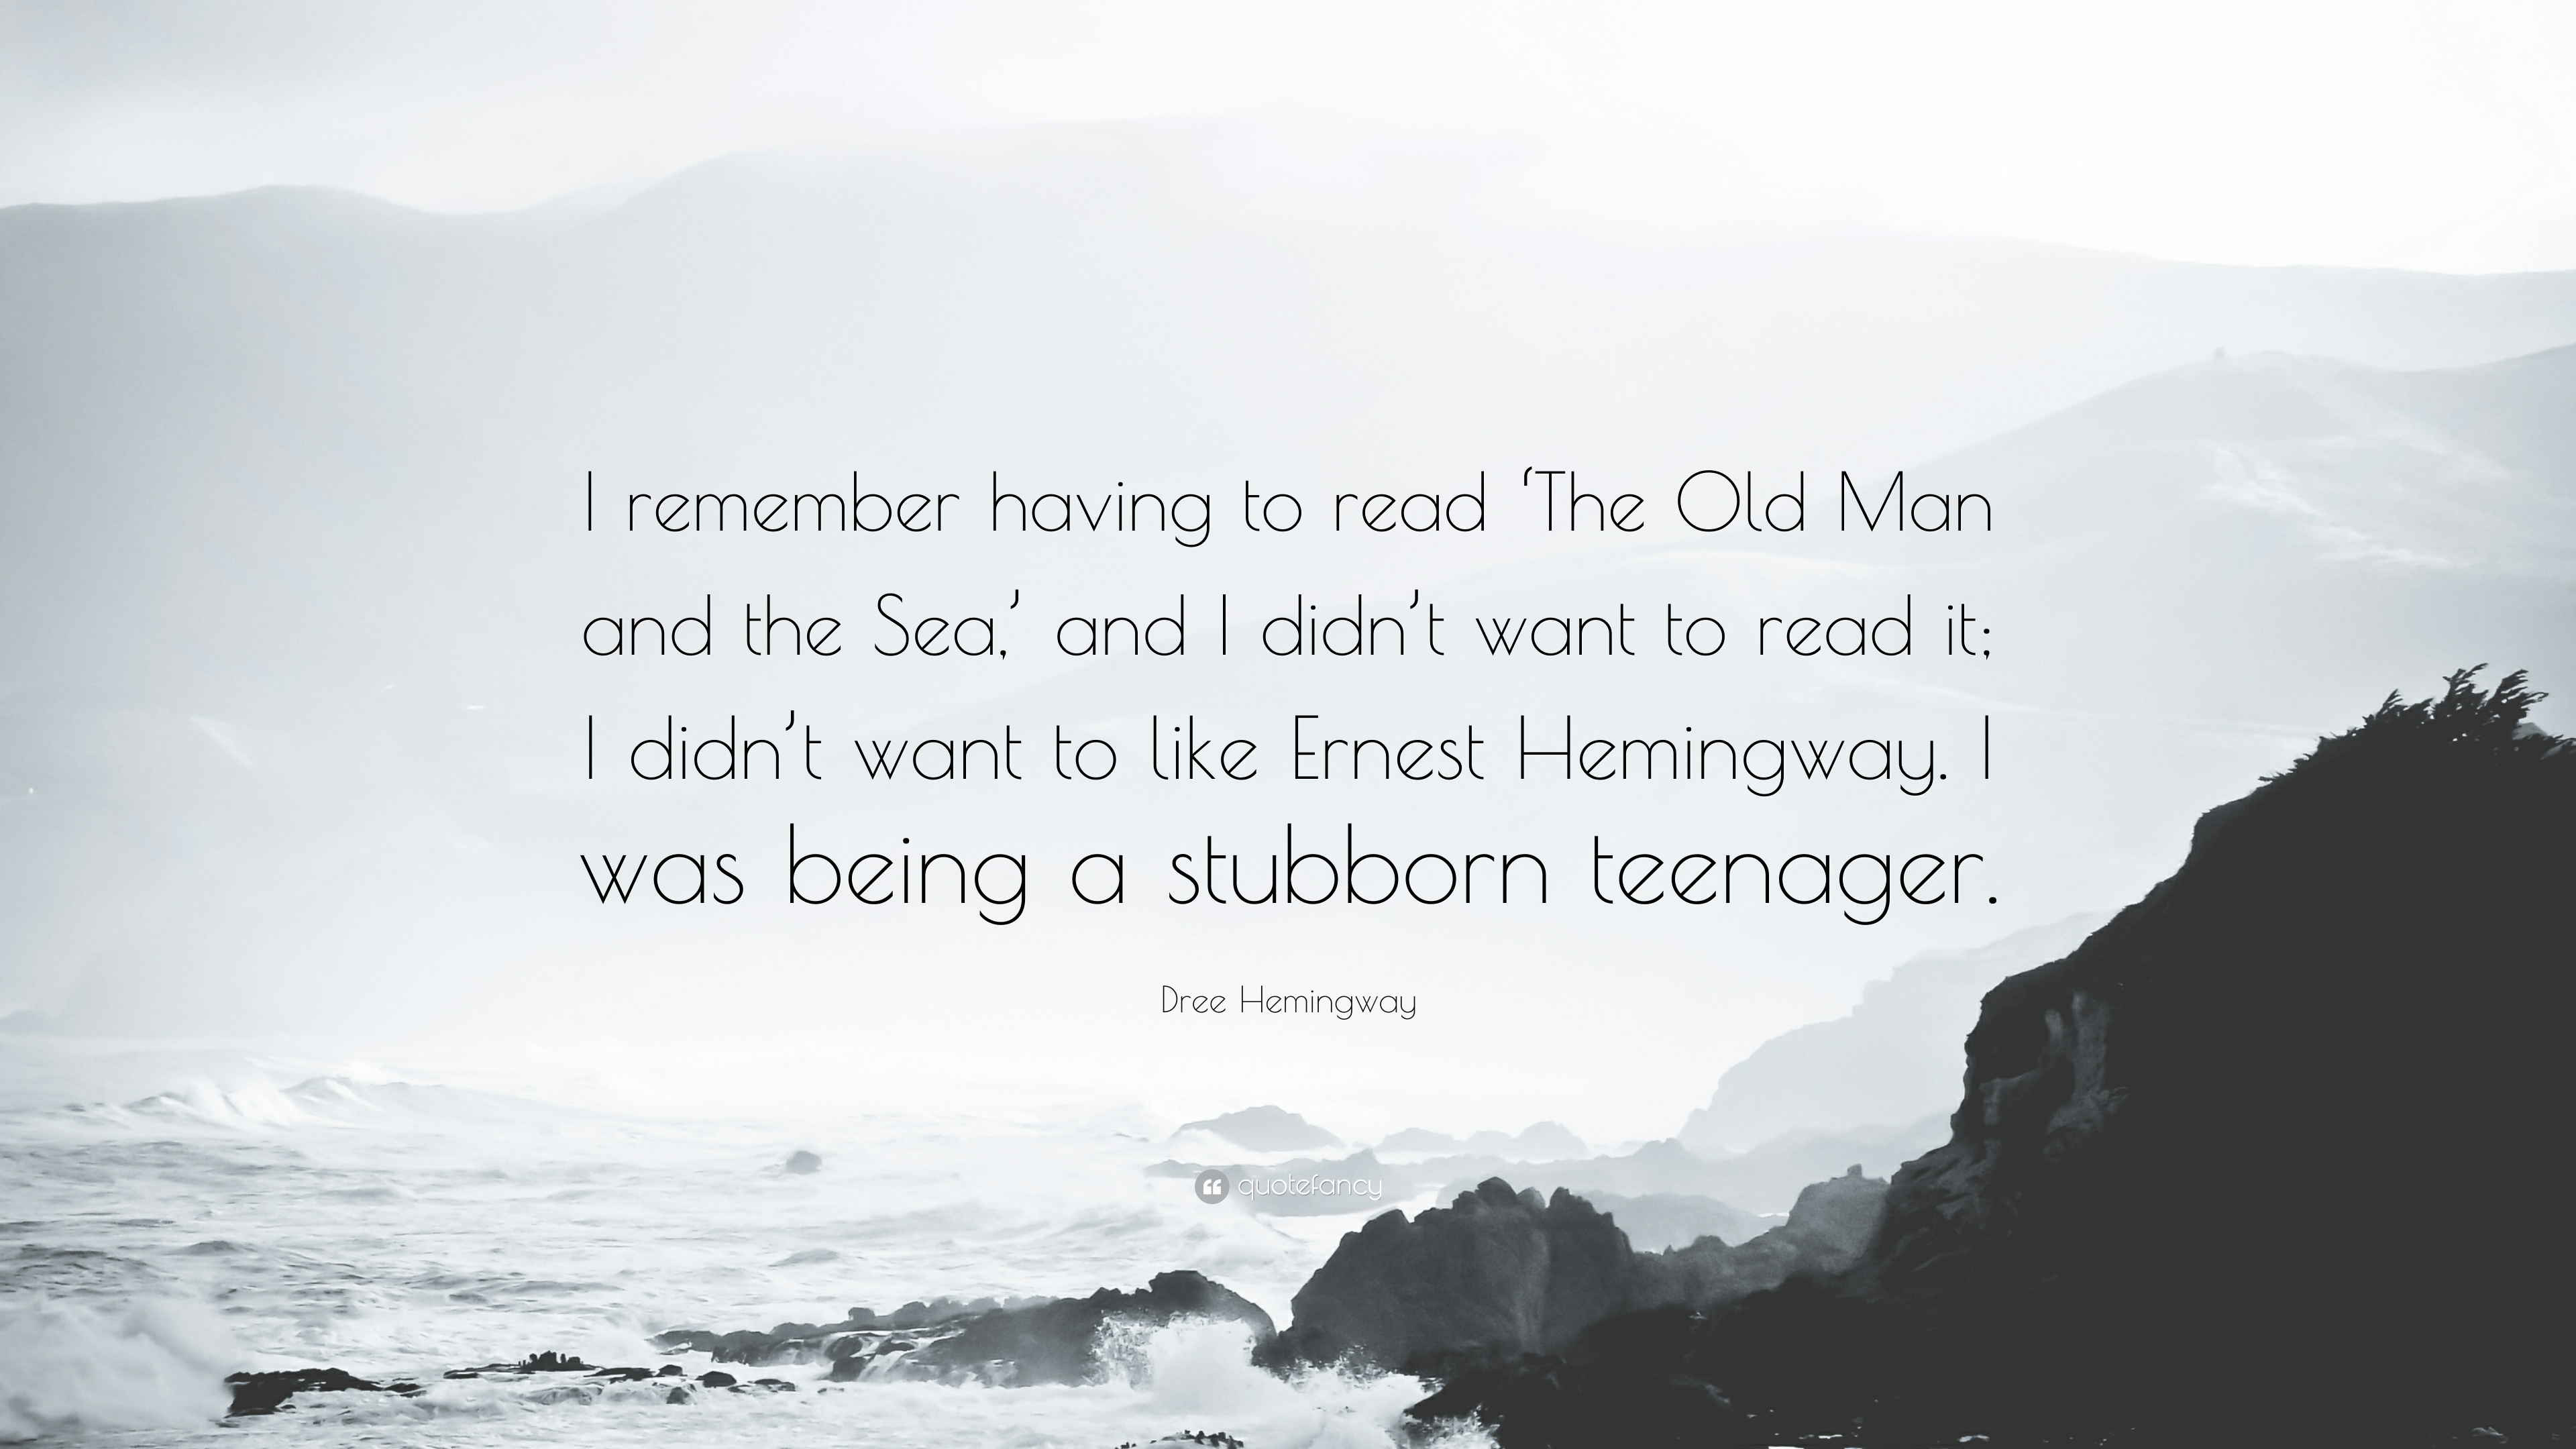 Ernest Hemingway Old Man And The Sea Quotes Twitter thumbnail